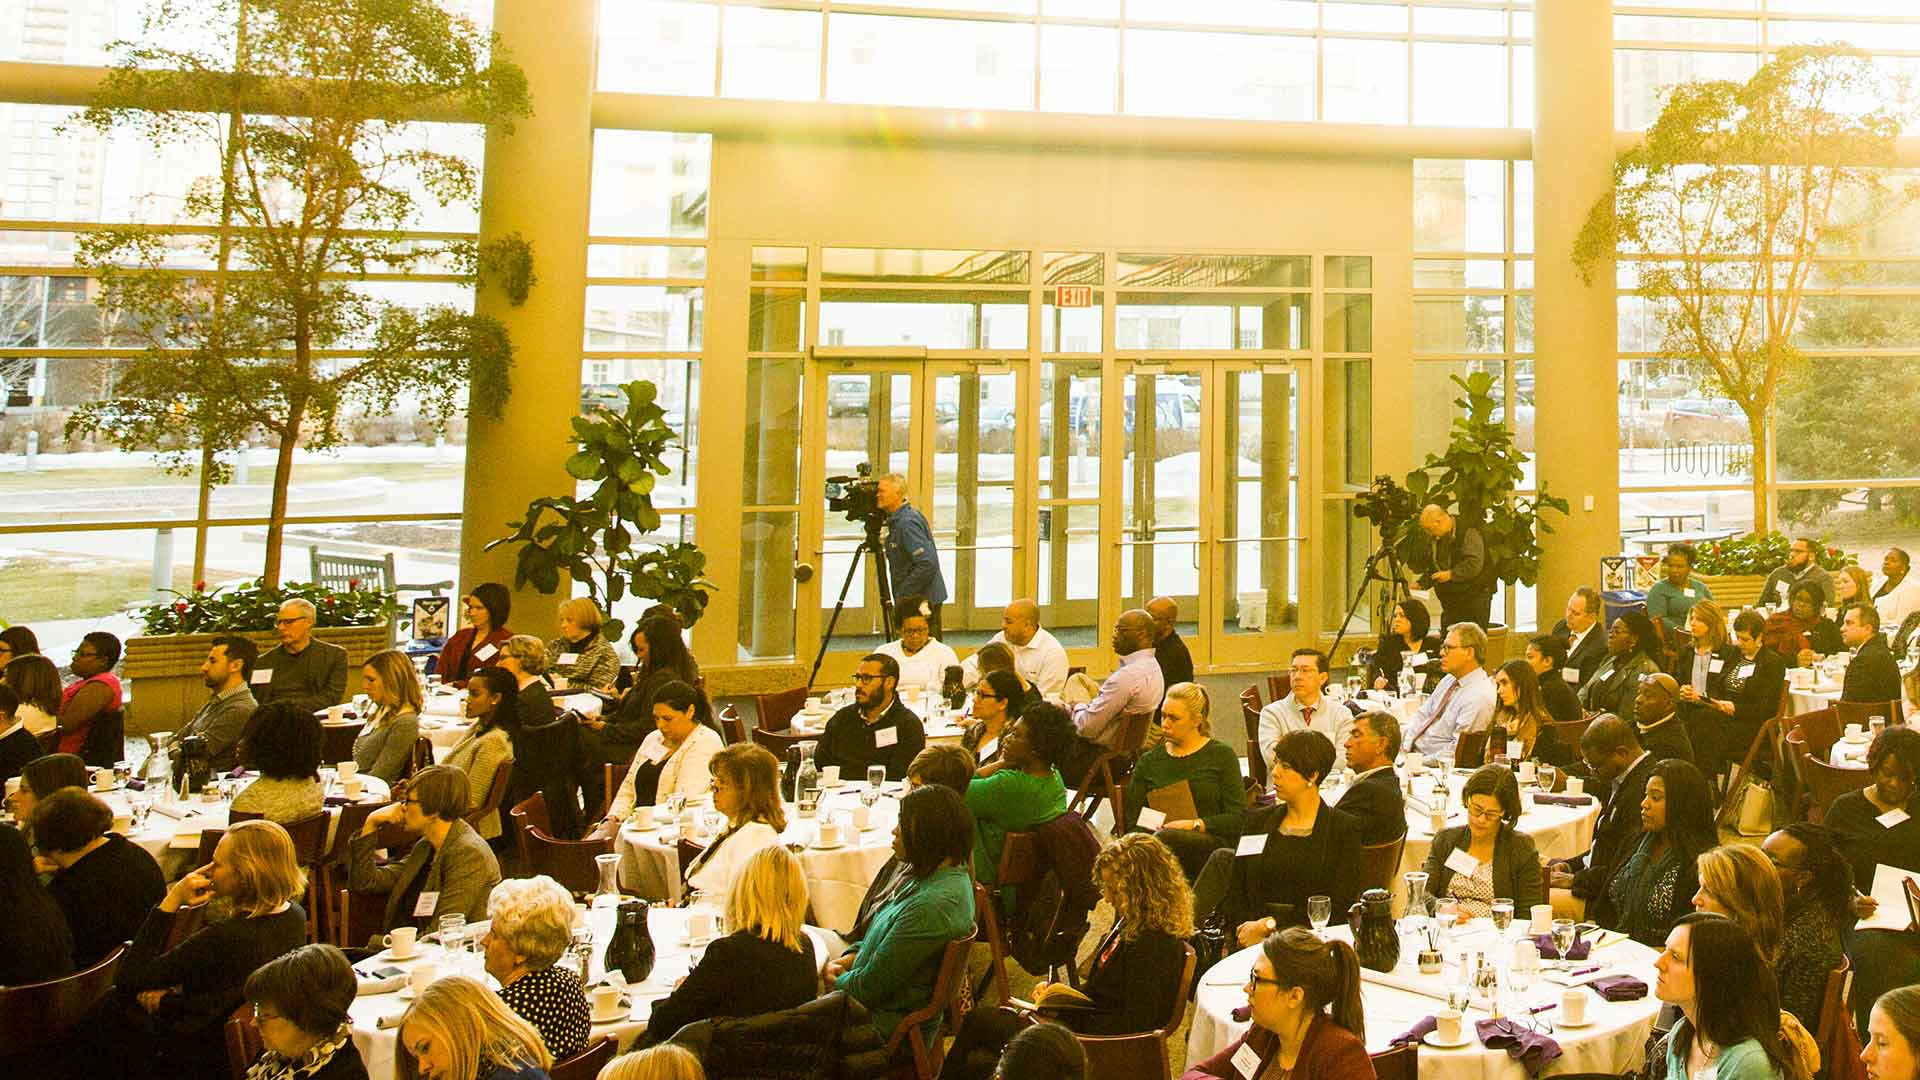 Attendees listen to a speech over dinner at the Schulze Atrium.